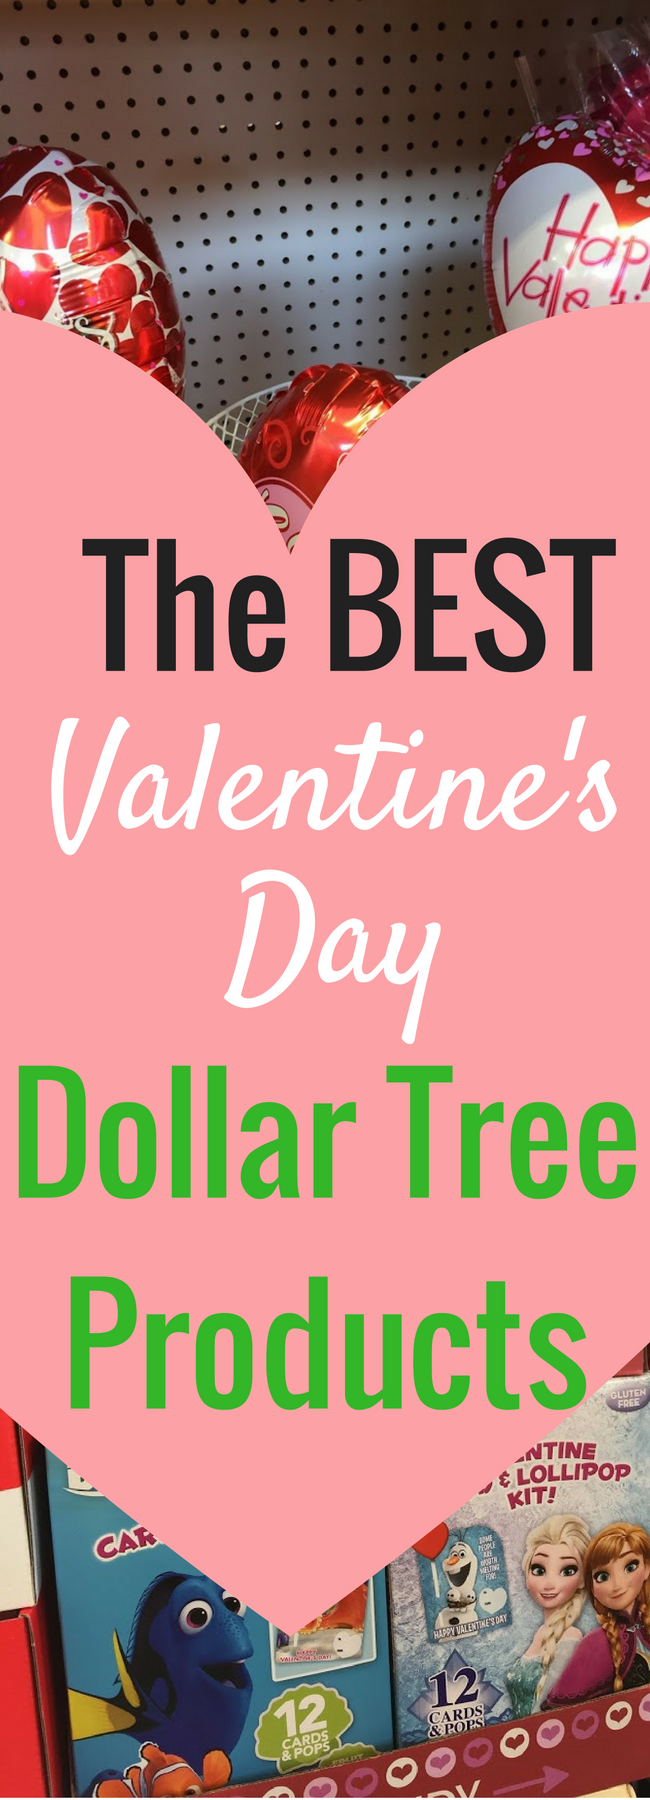 The Best Dollar Tree Valentine's Day Products / Valentine's Day / Inexpensive Valentine's Day / Dollar Tree Ideas